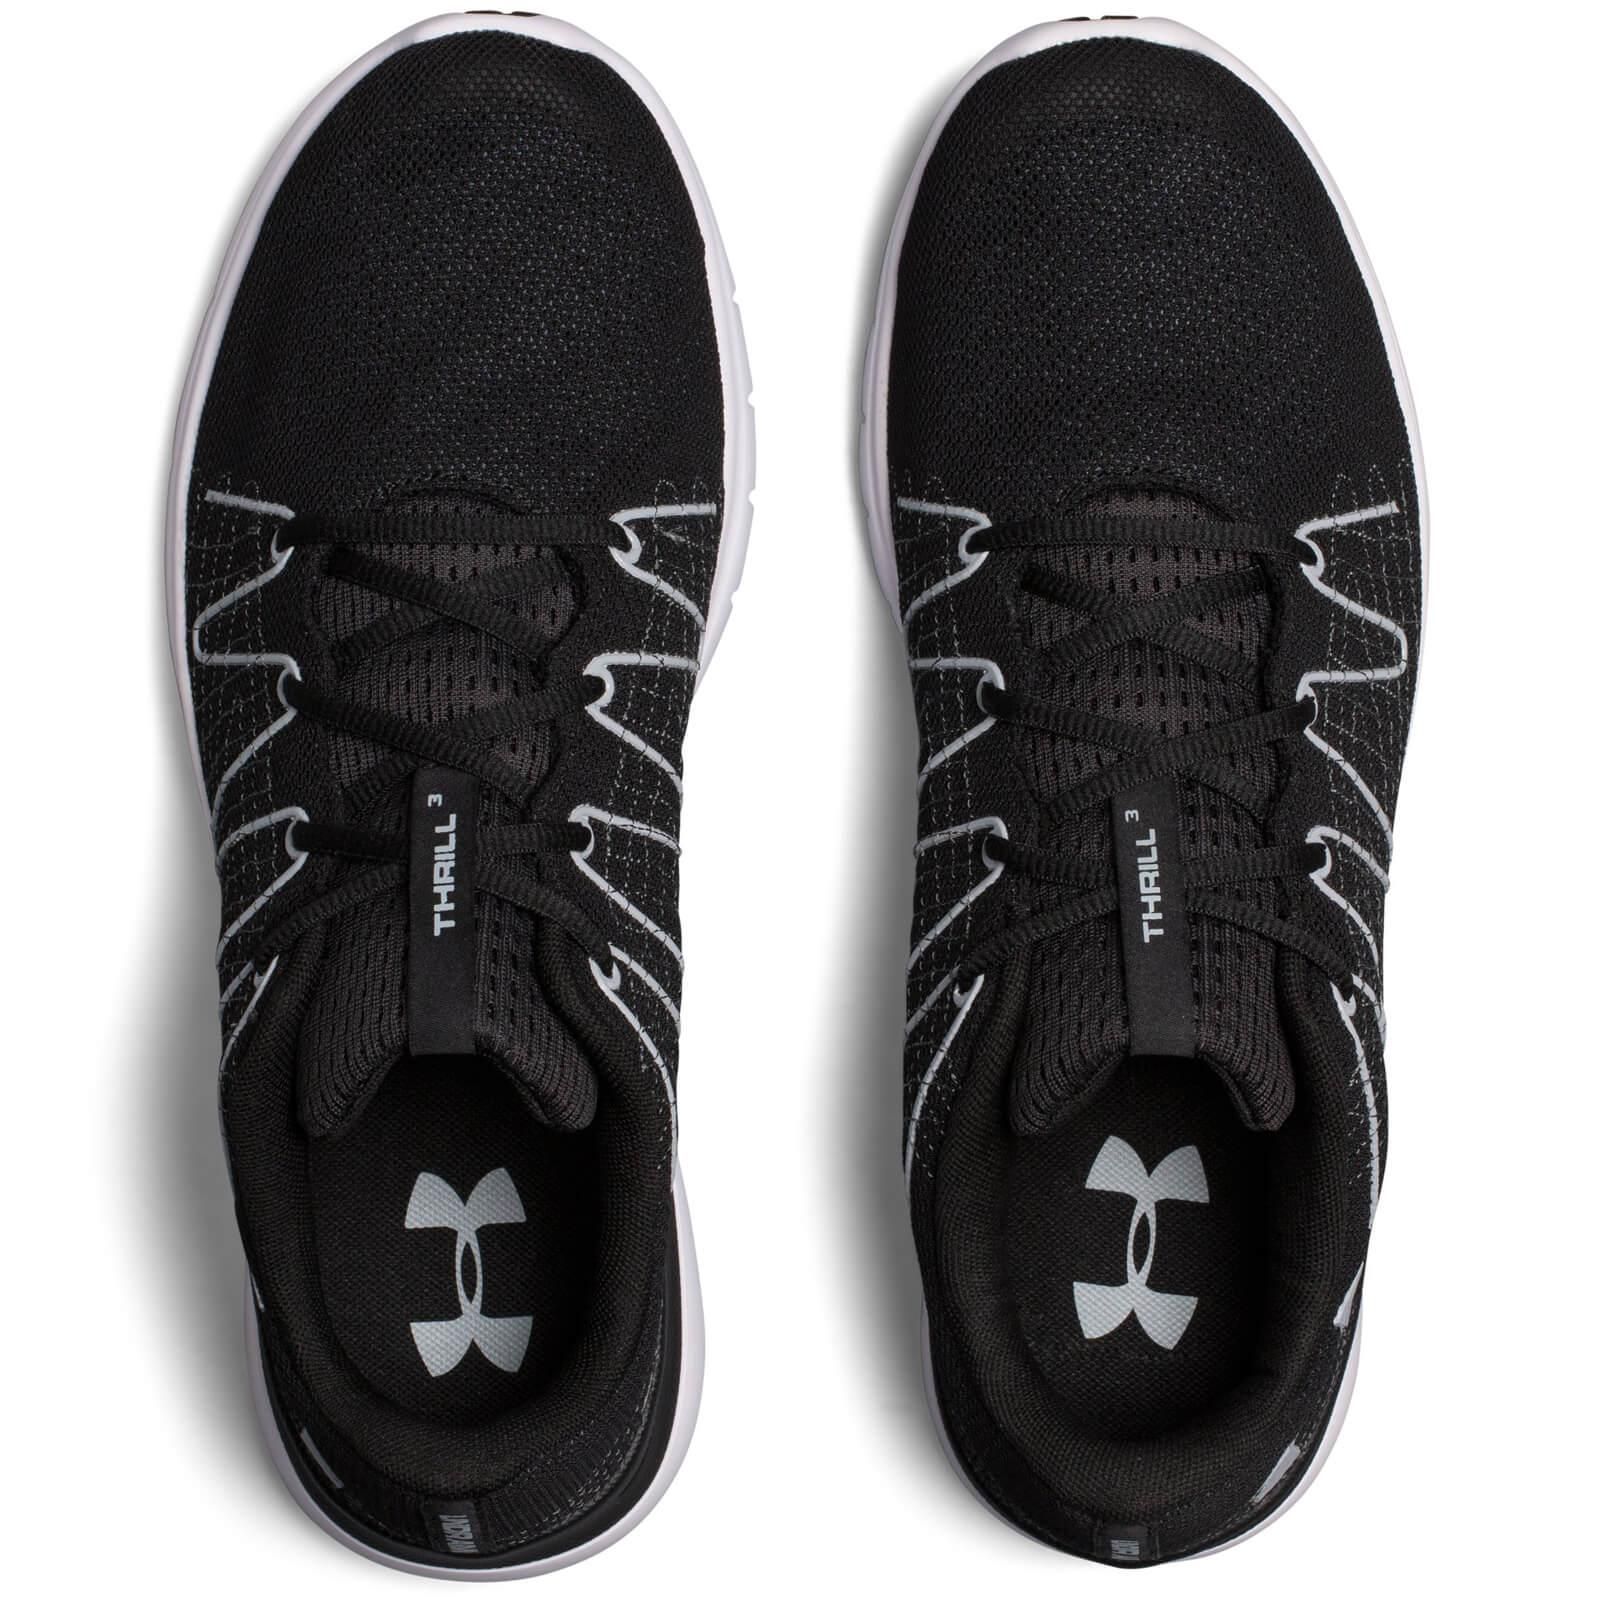 Under Armour Thrill 3 Running Shoes in